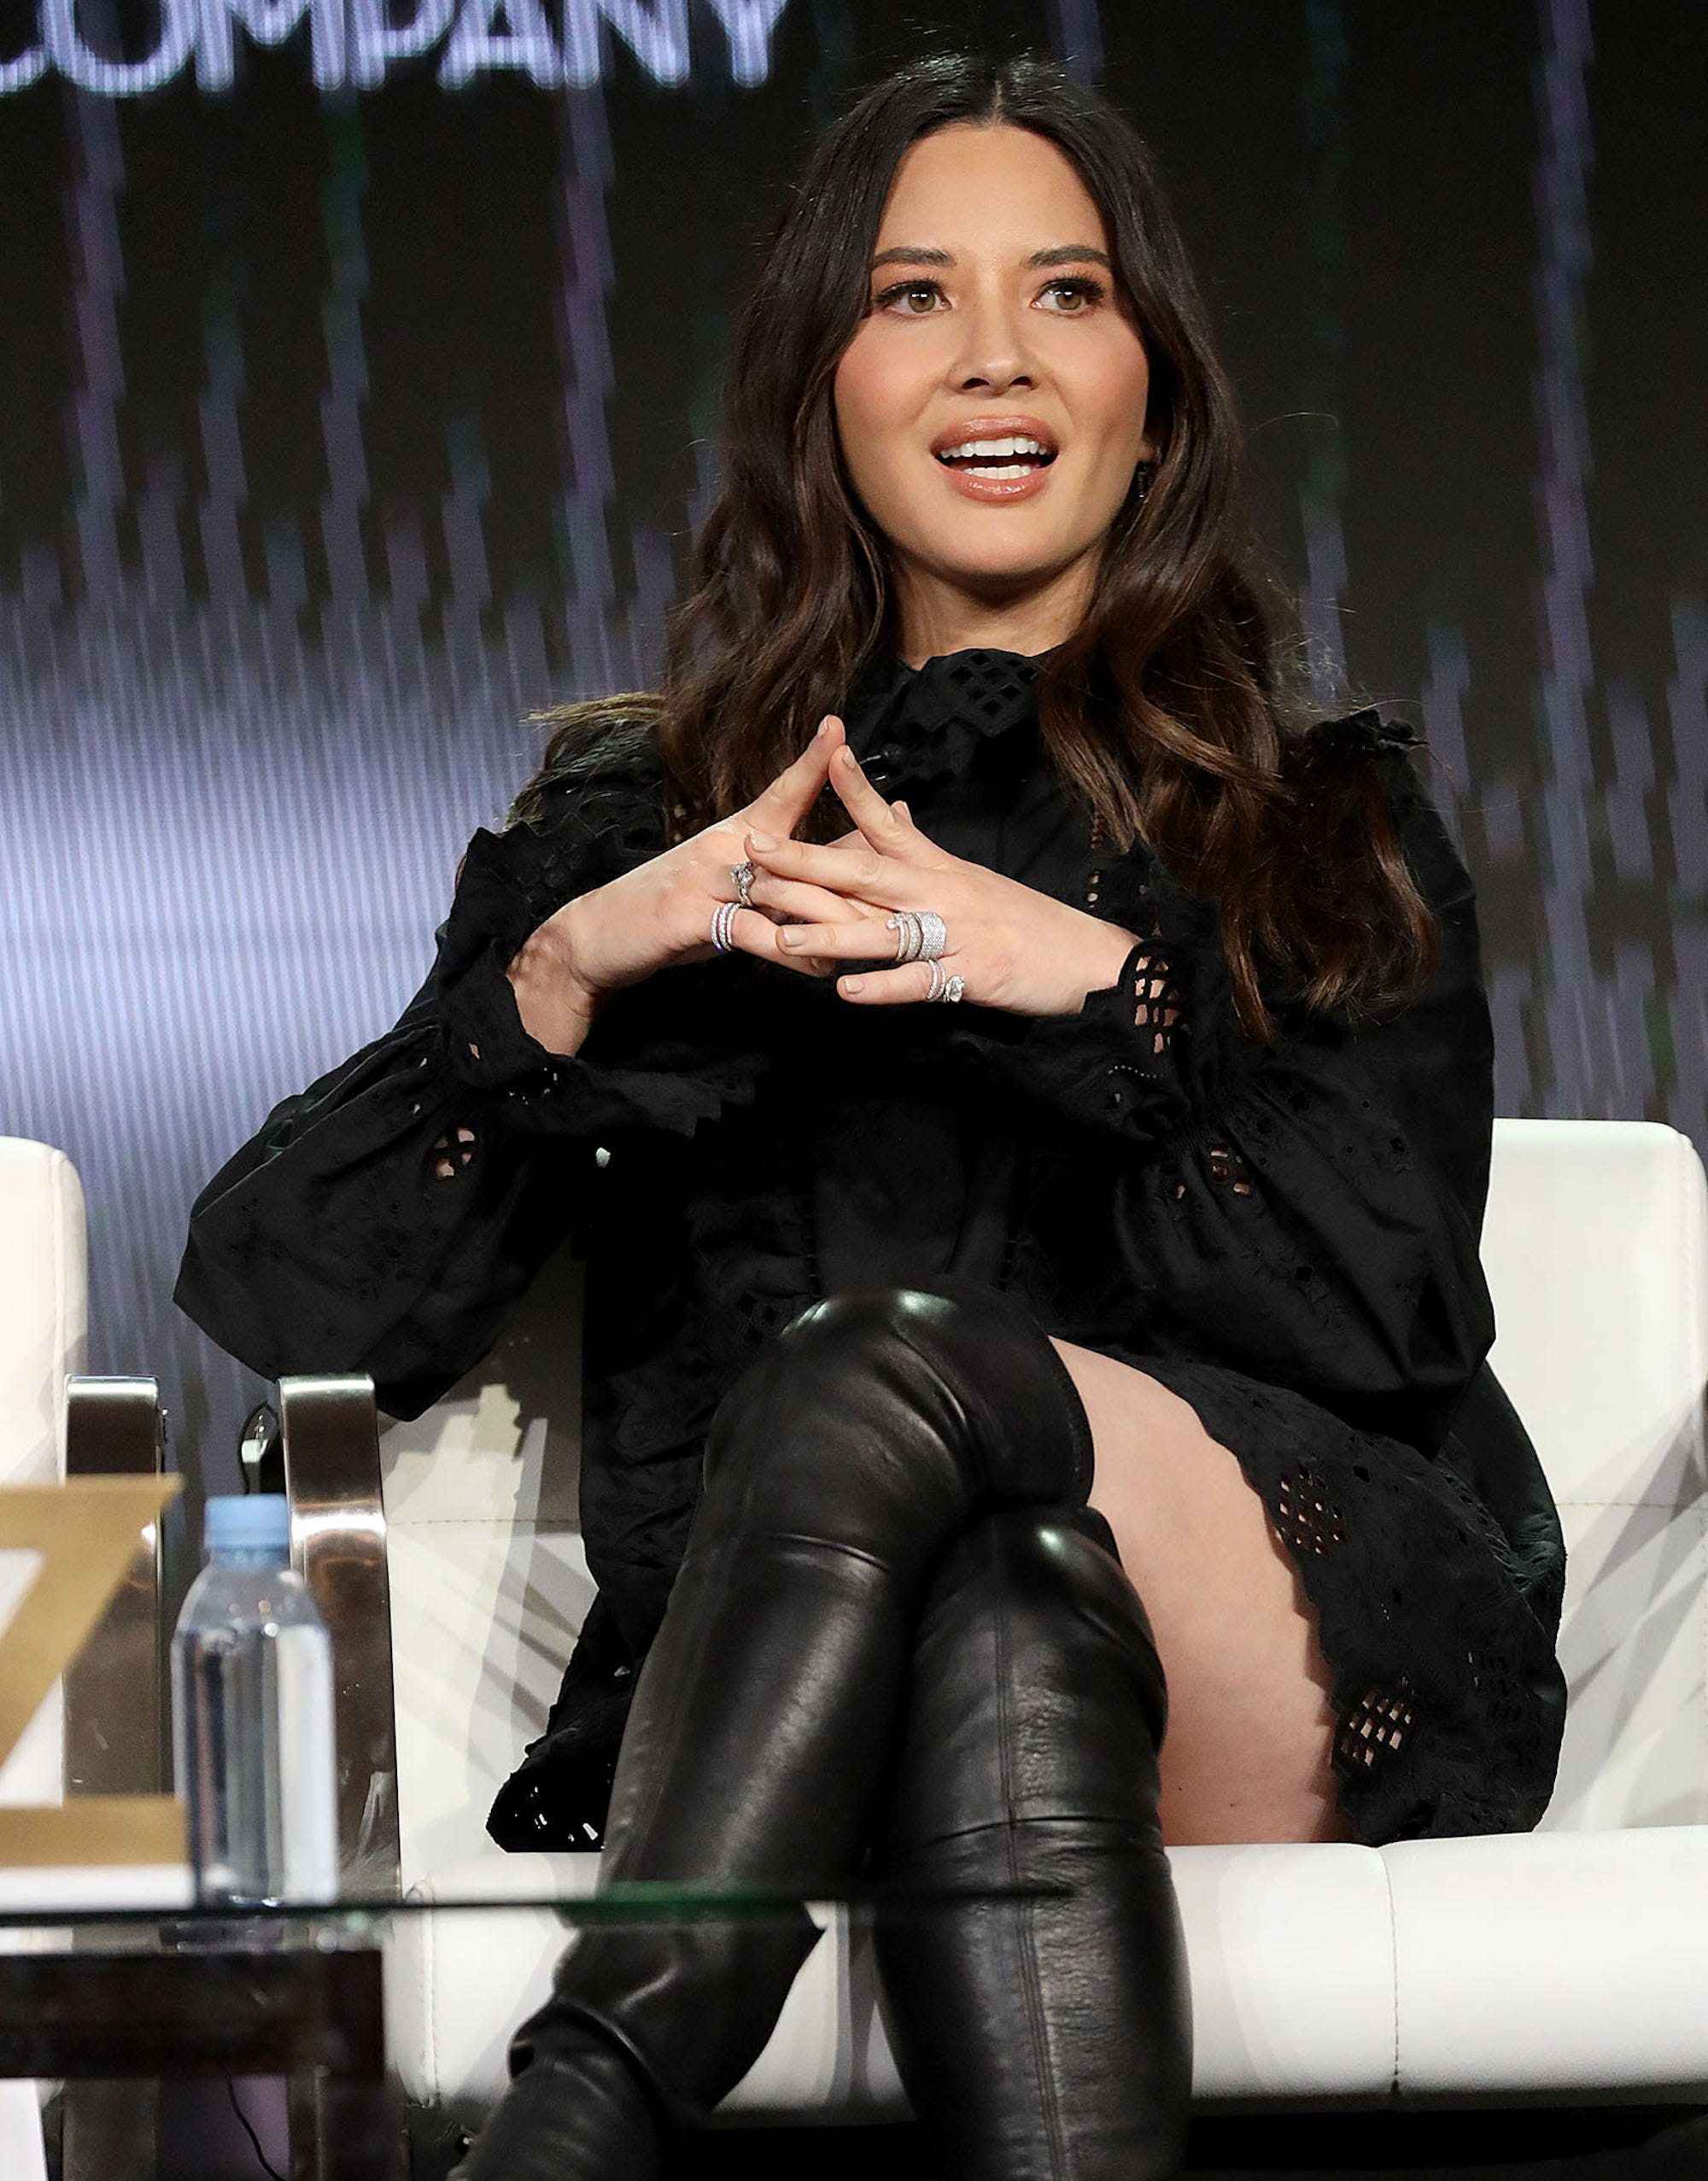 Celebrites Olivia Munn naked (98 photo), Topless, Bikini, Feet, butt 2015